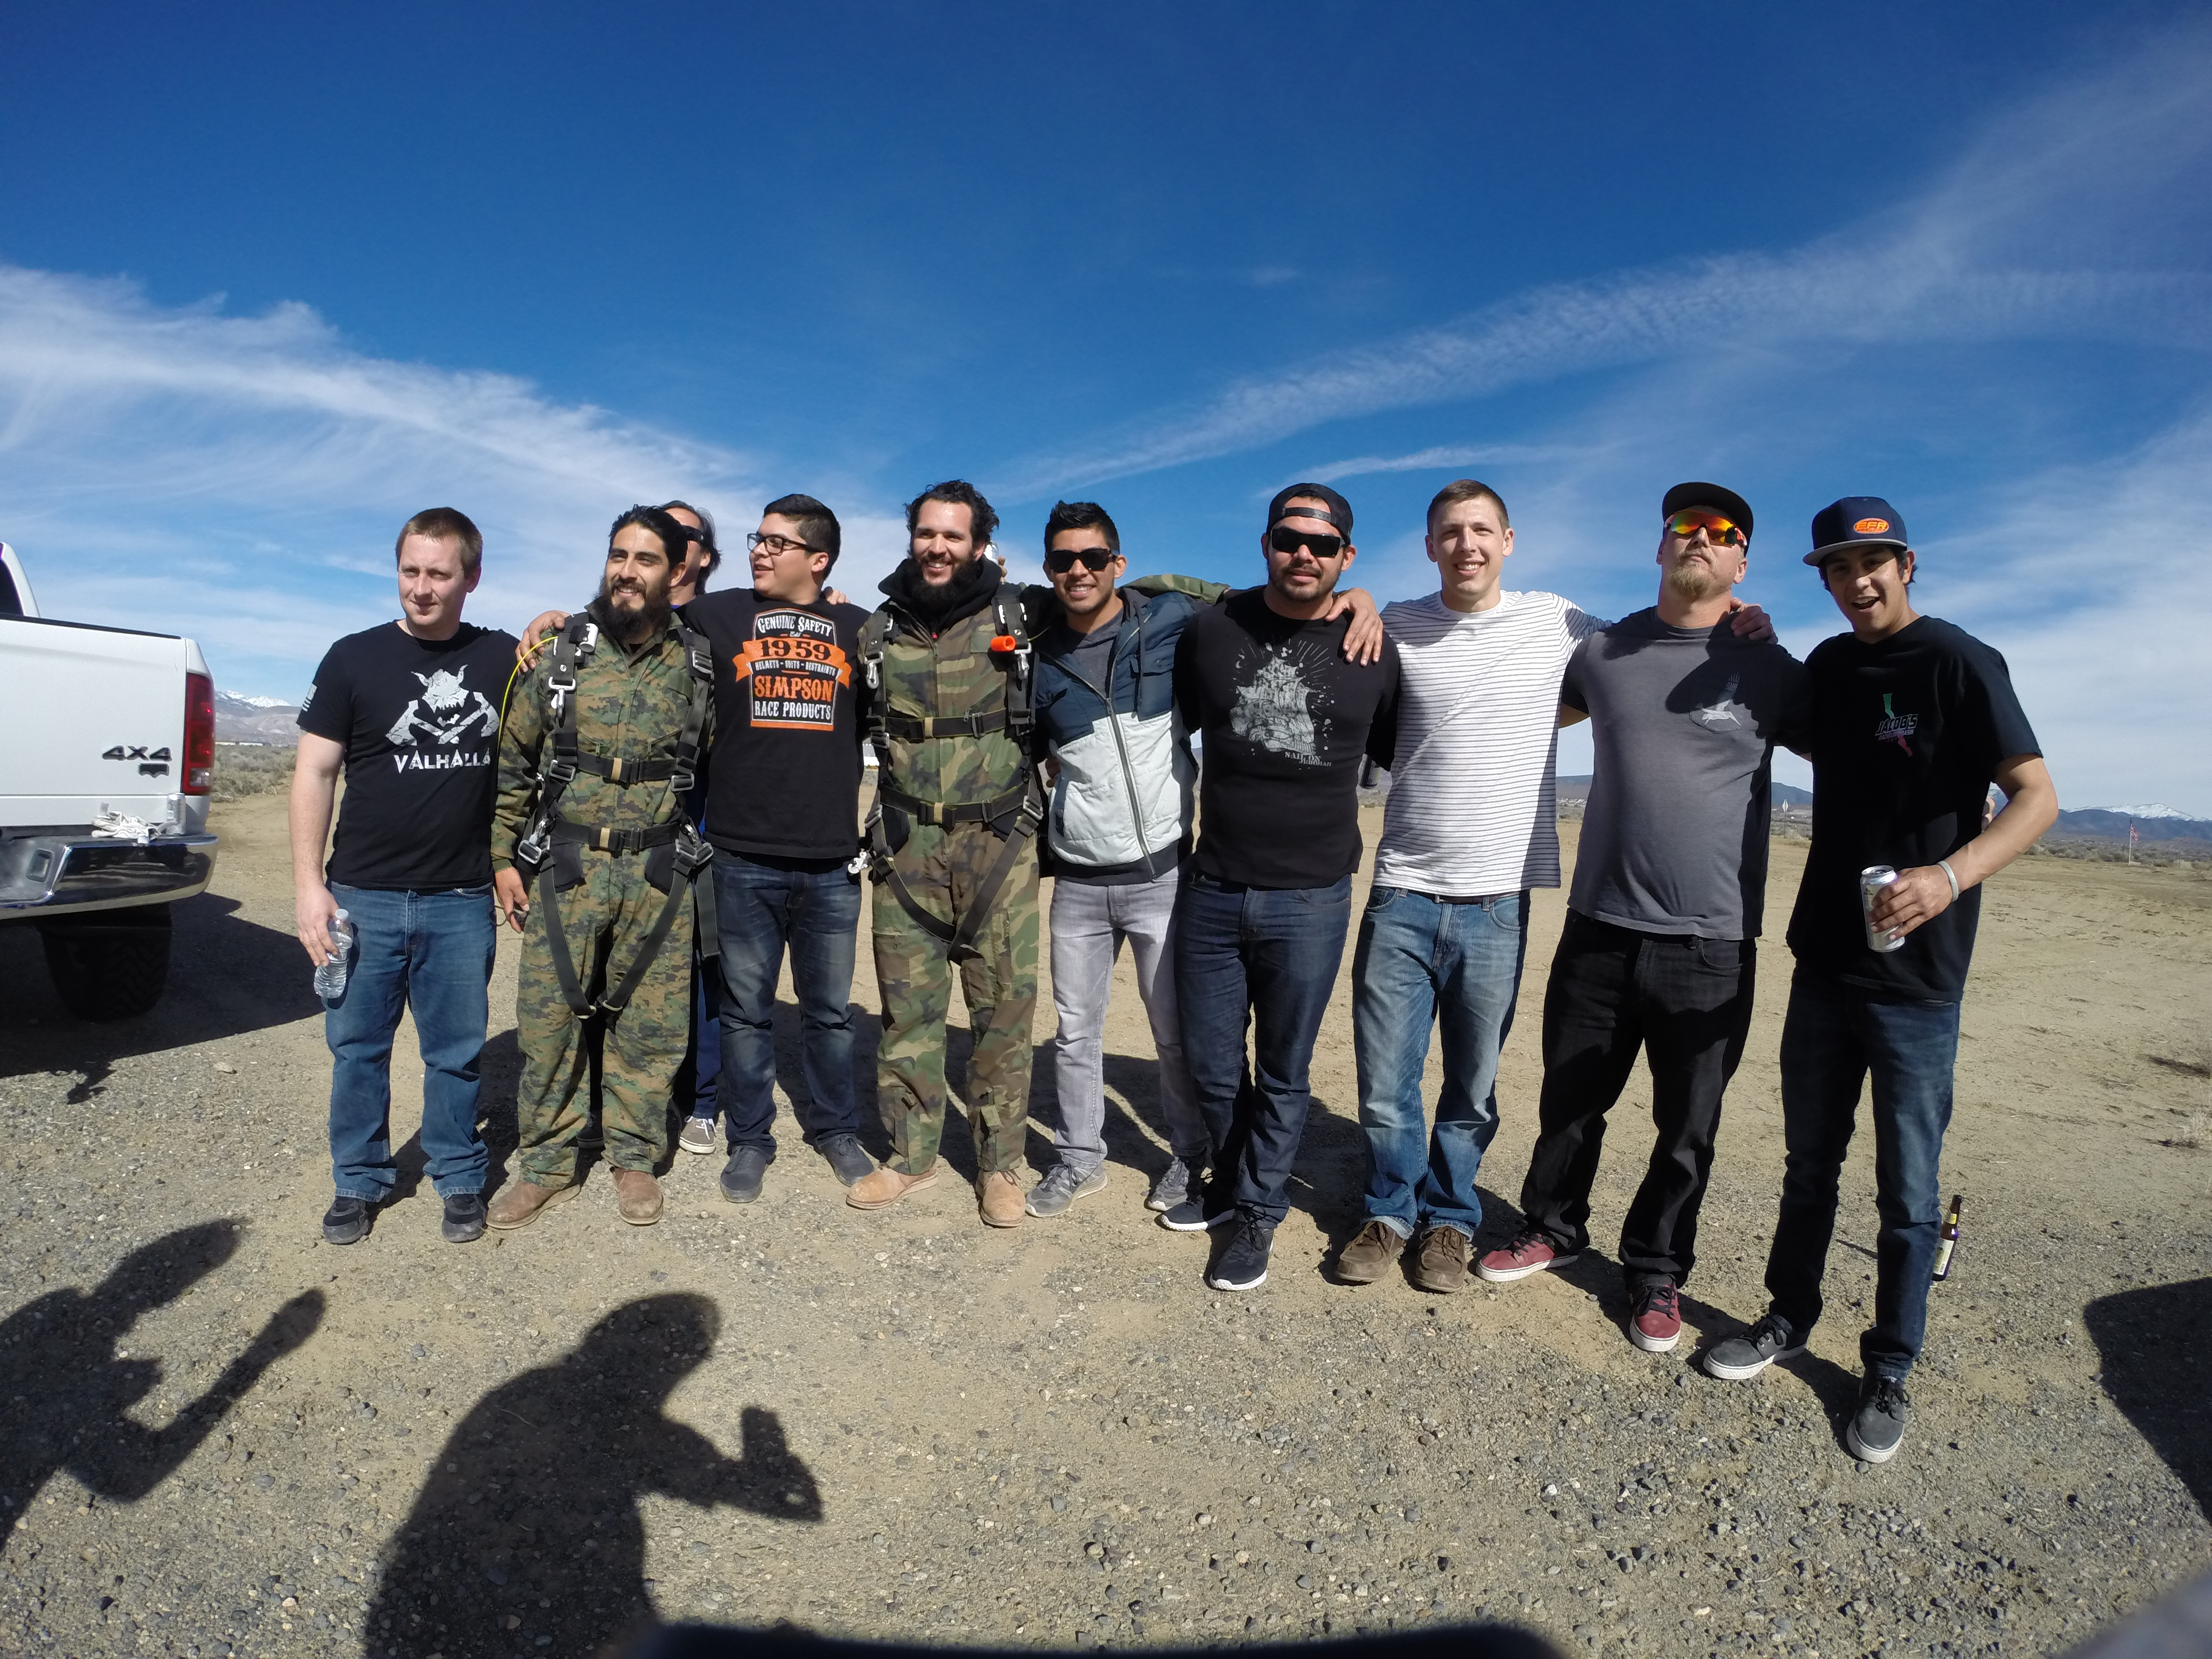 A group of men ready to skydive at Skydive Lake Tahoe